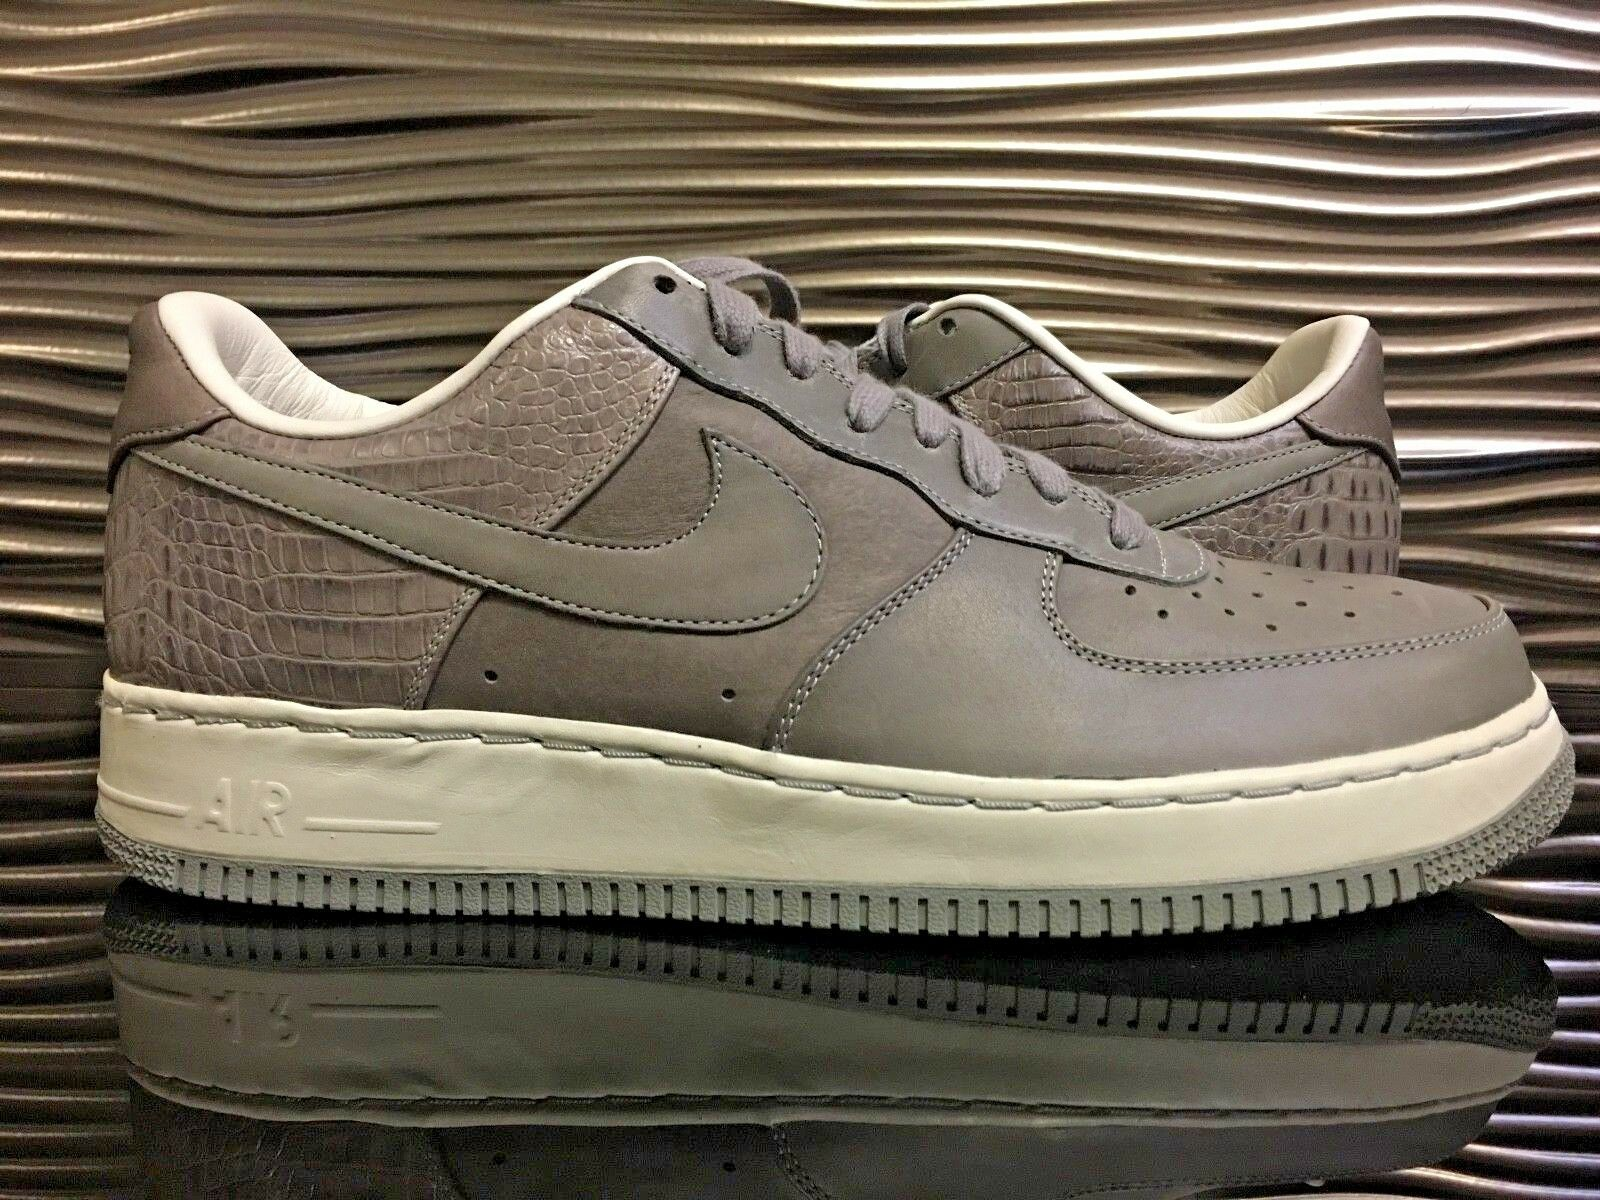 Nike Air Force 1 Low Supreme 07 QK Medium Grey Sail 316133-002 Premium